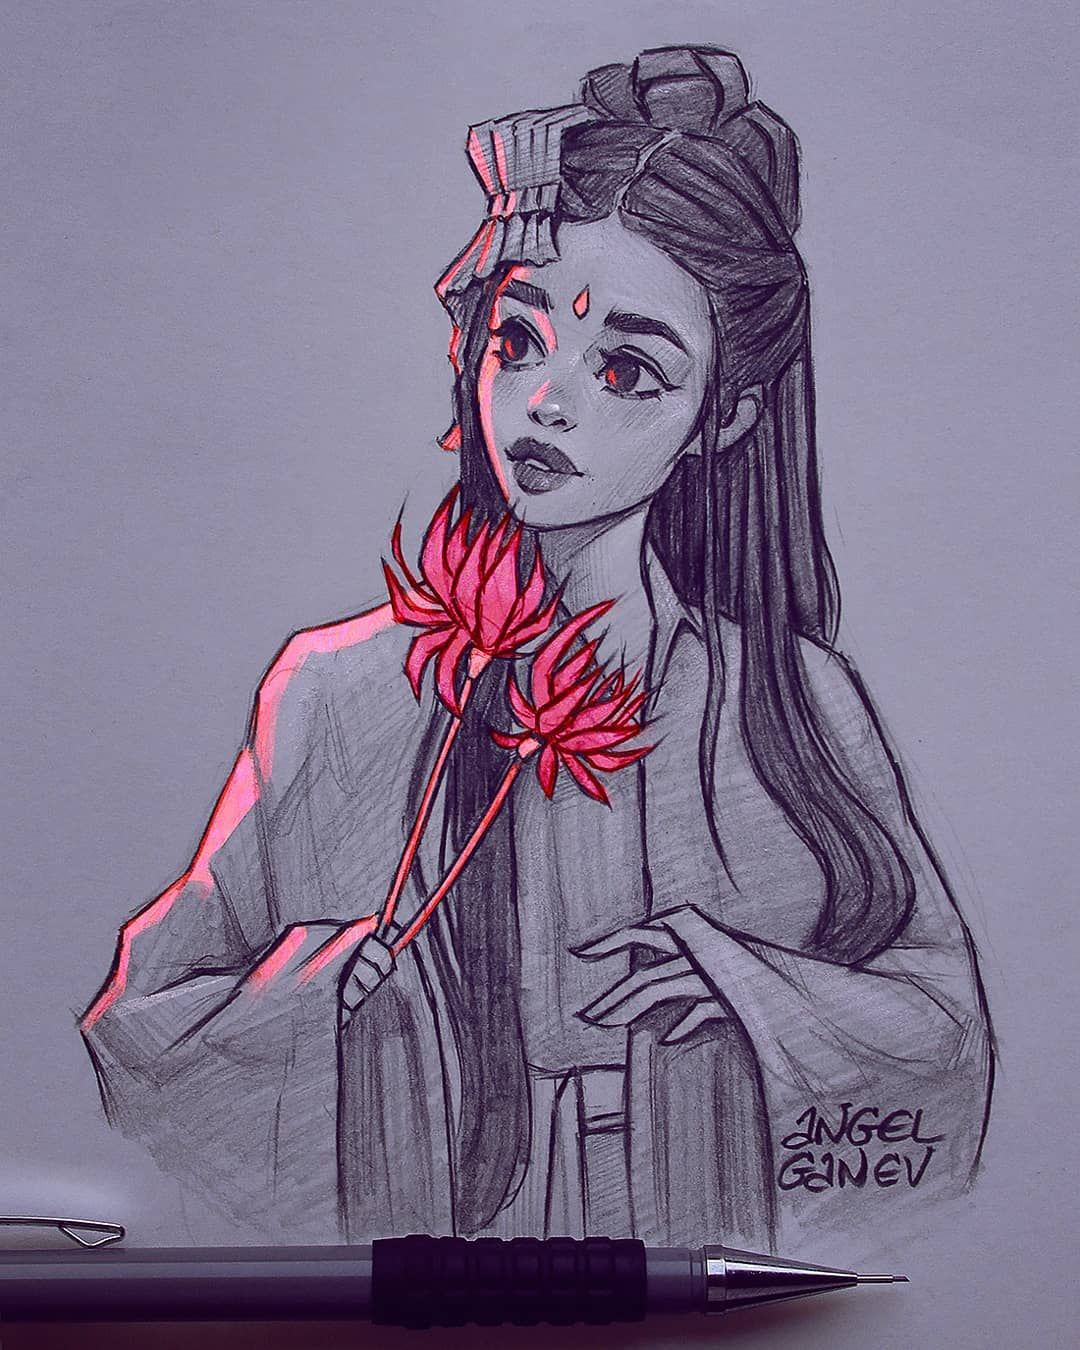 "Angel Ganev on Instagram: ""Glowy~😍✨ Pencil sketch with color but don't know who the reference is cause I found it on this chinese website huaban.com 🙈 . If anybody…"""